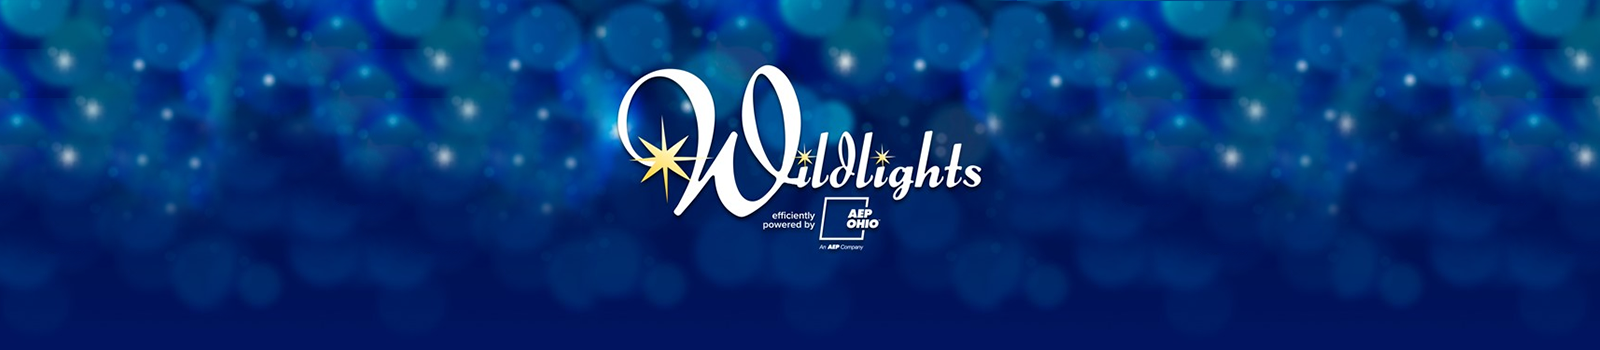 Germain Motor Company sponsors the Wildlights event at the.